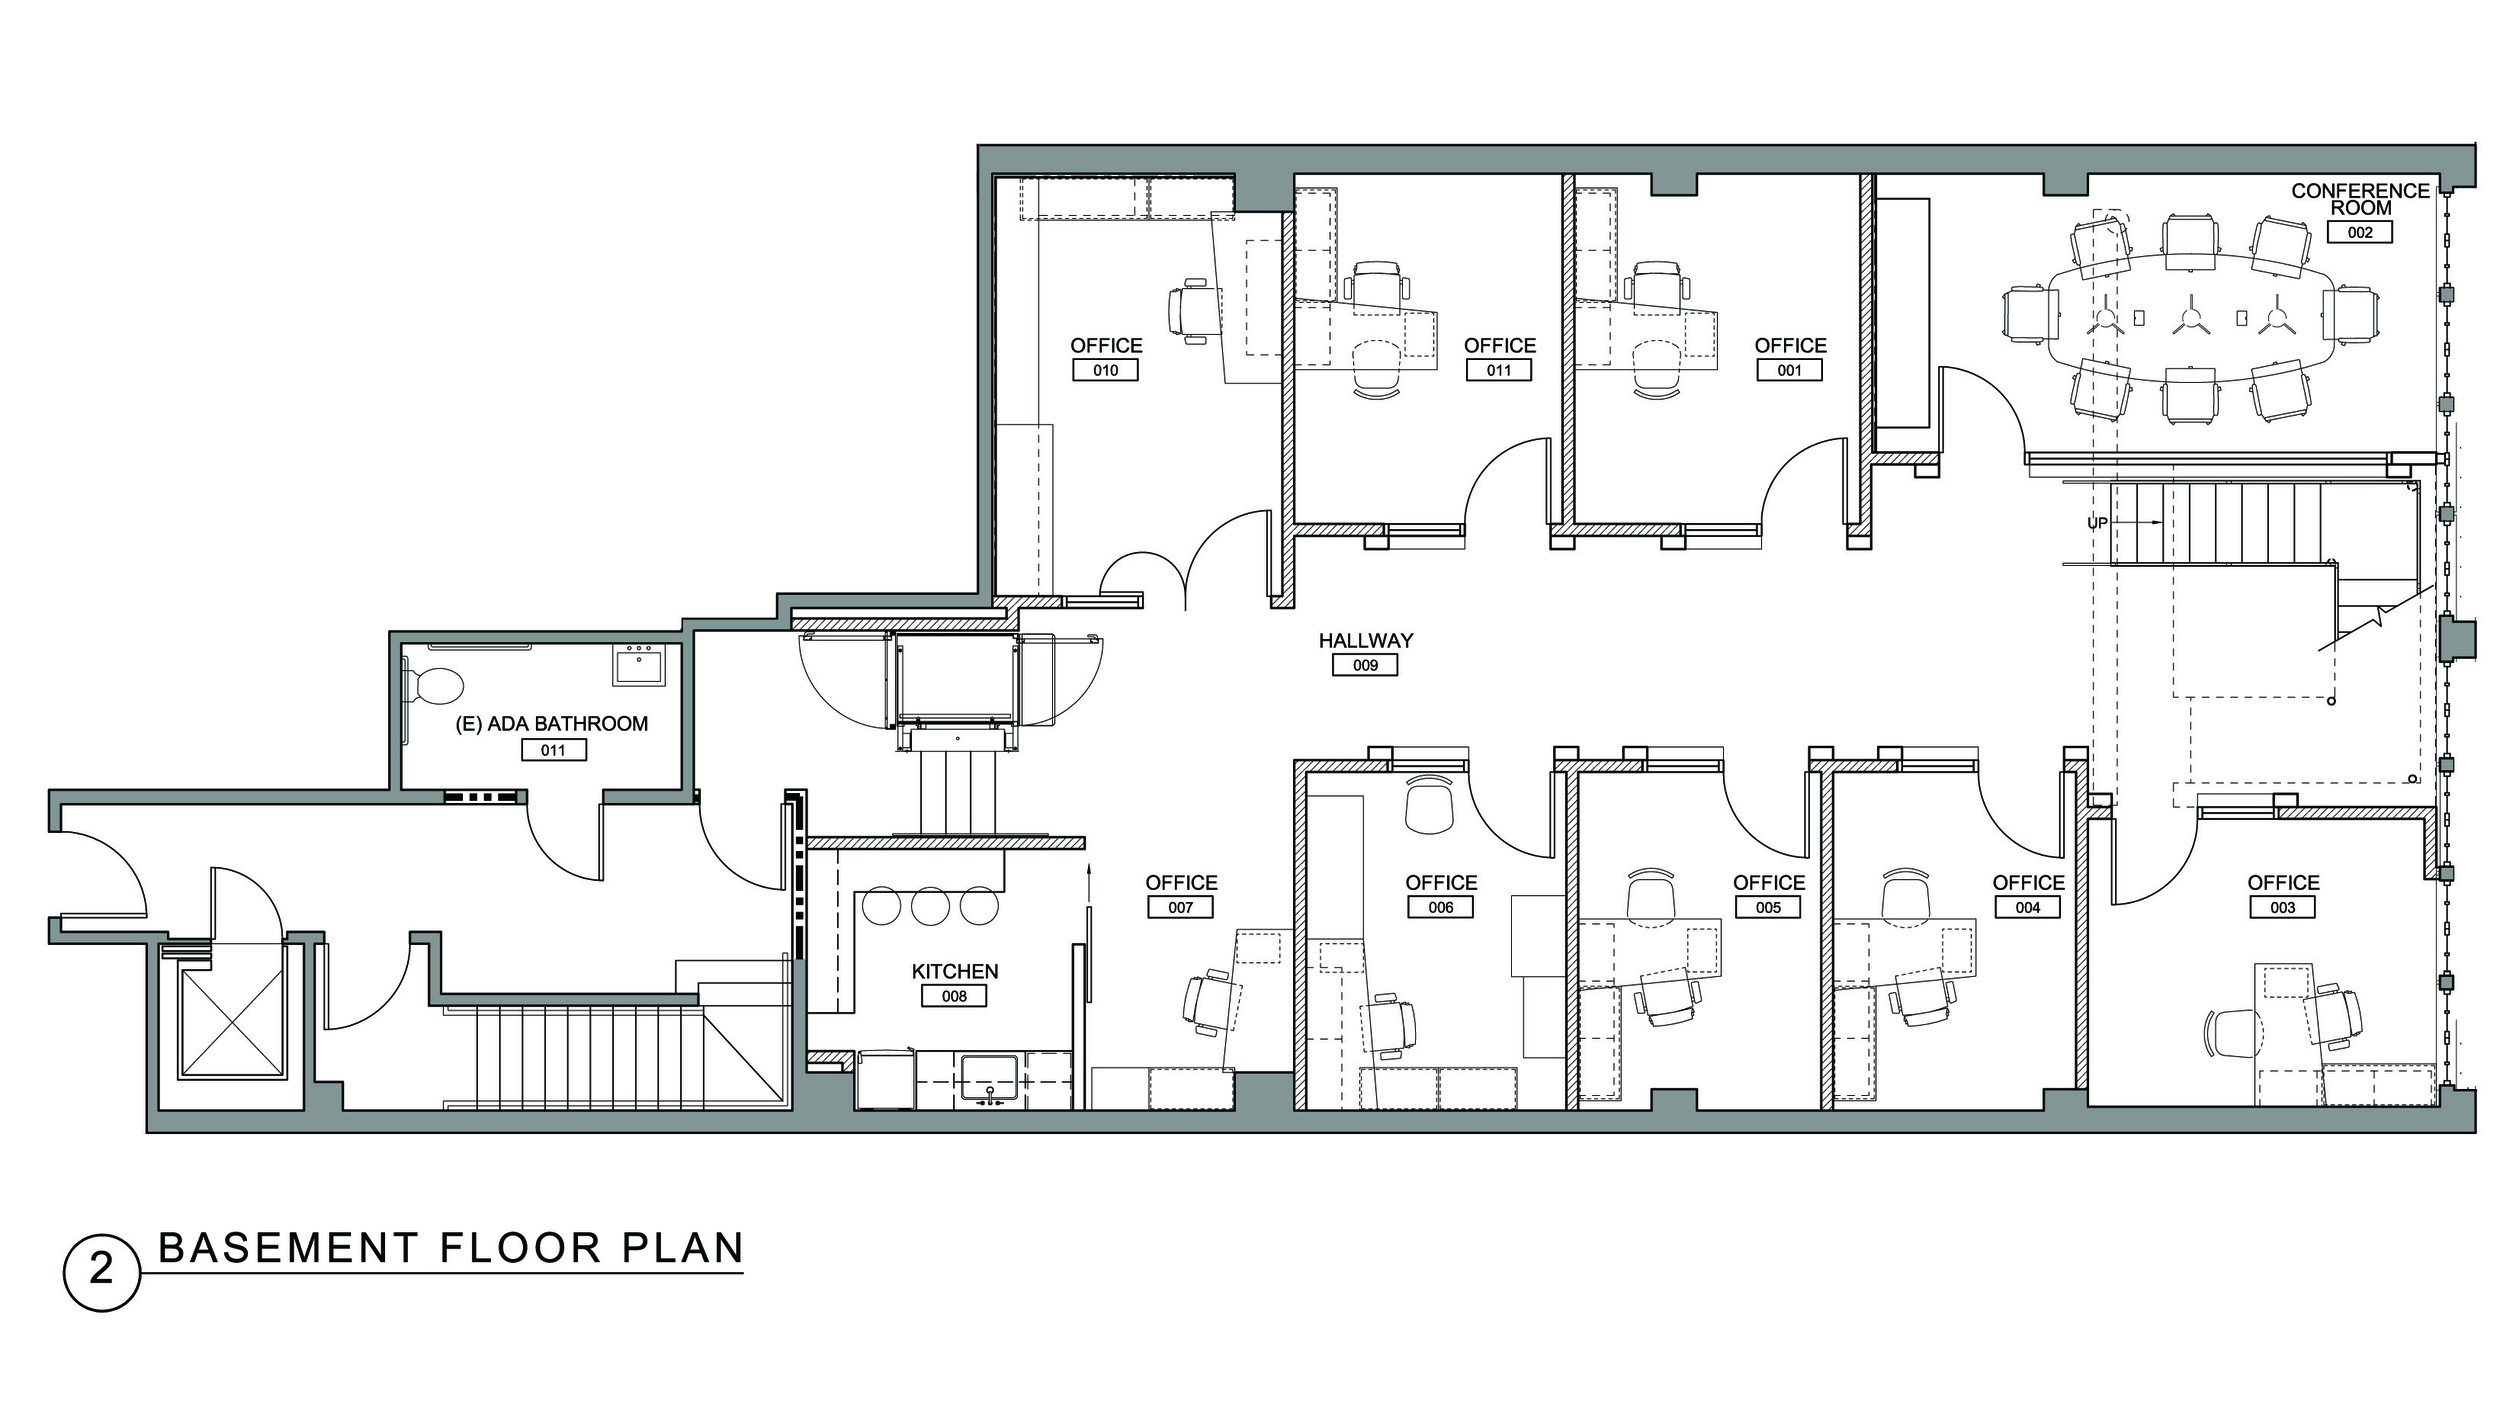 Slap Basement Floor Plan.jpg